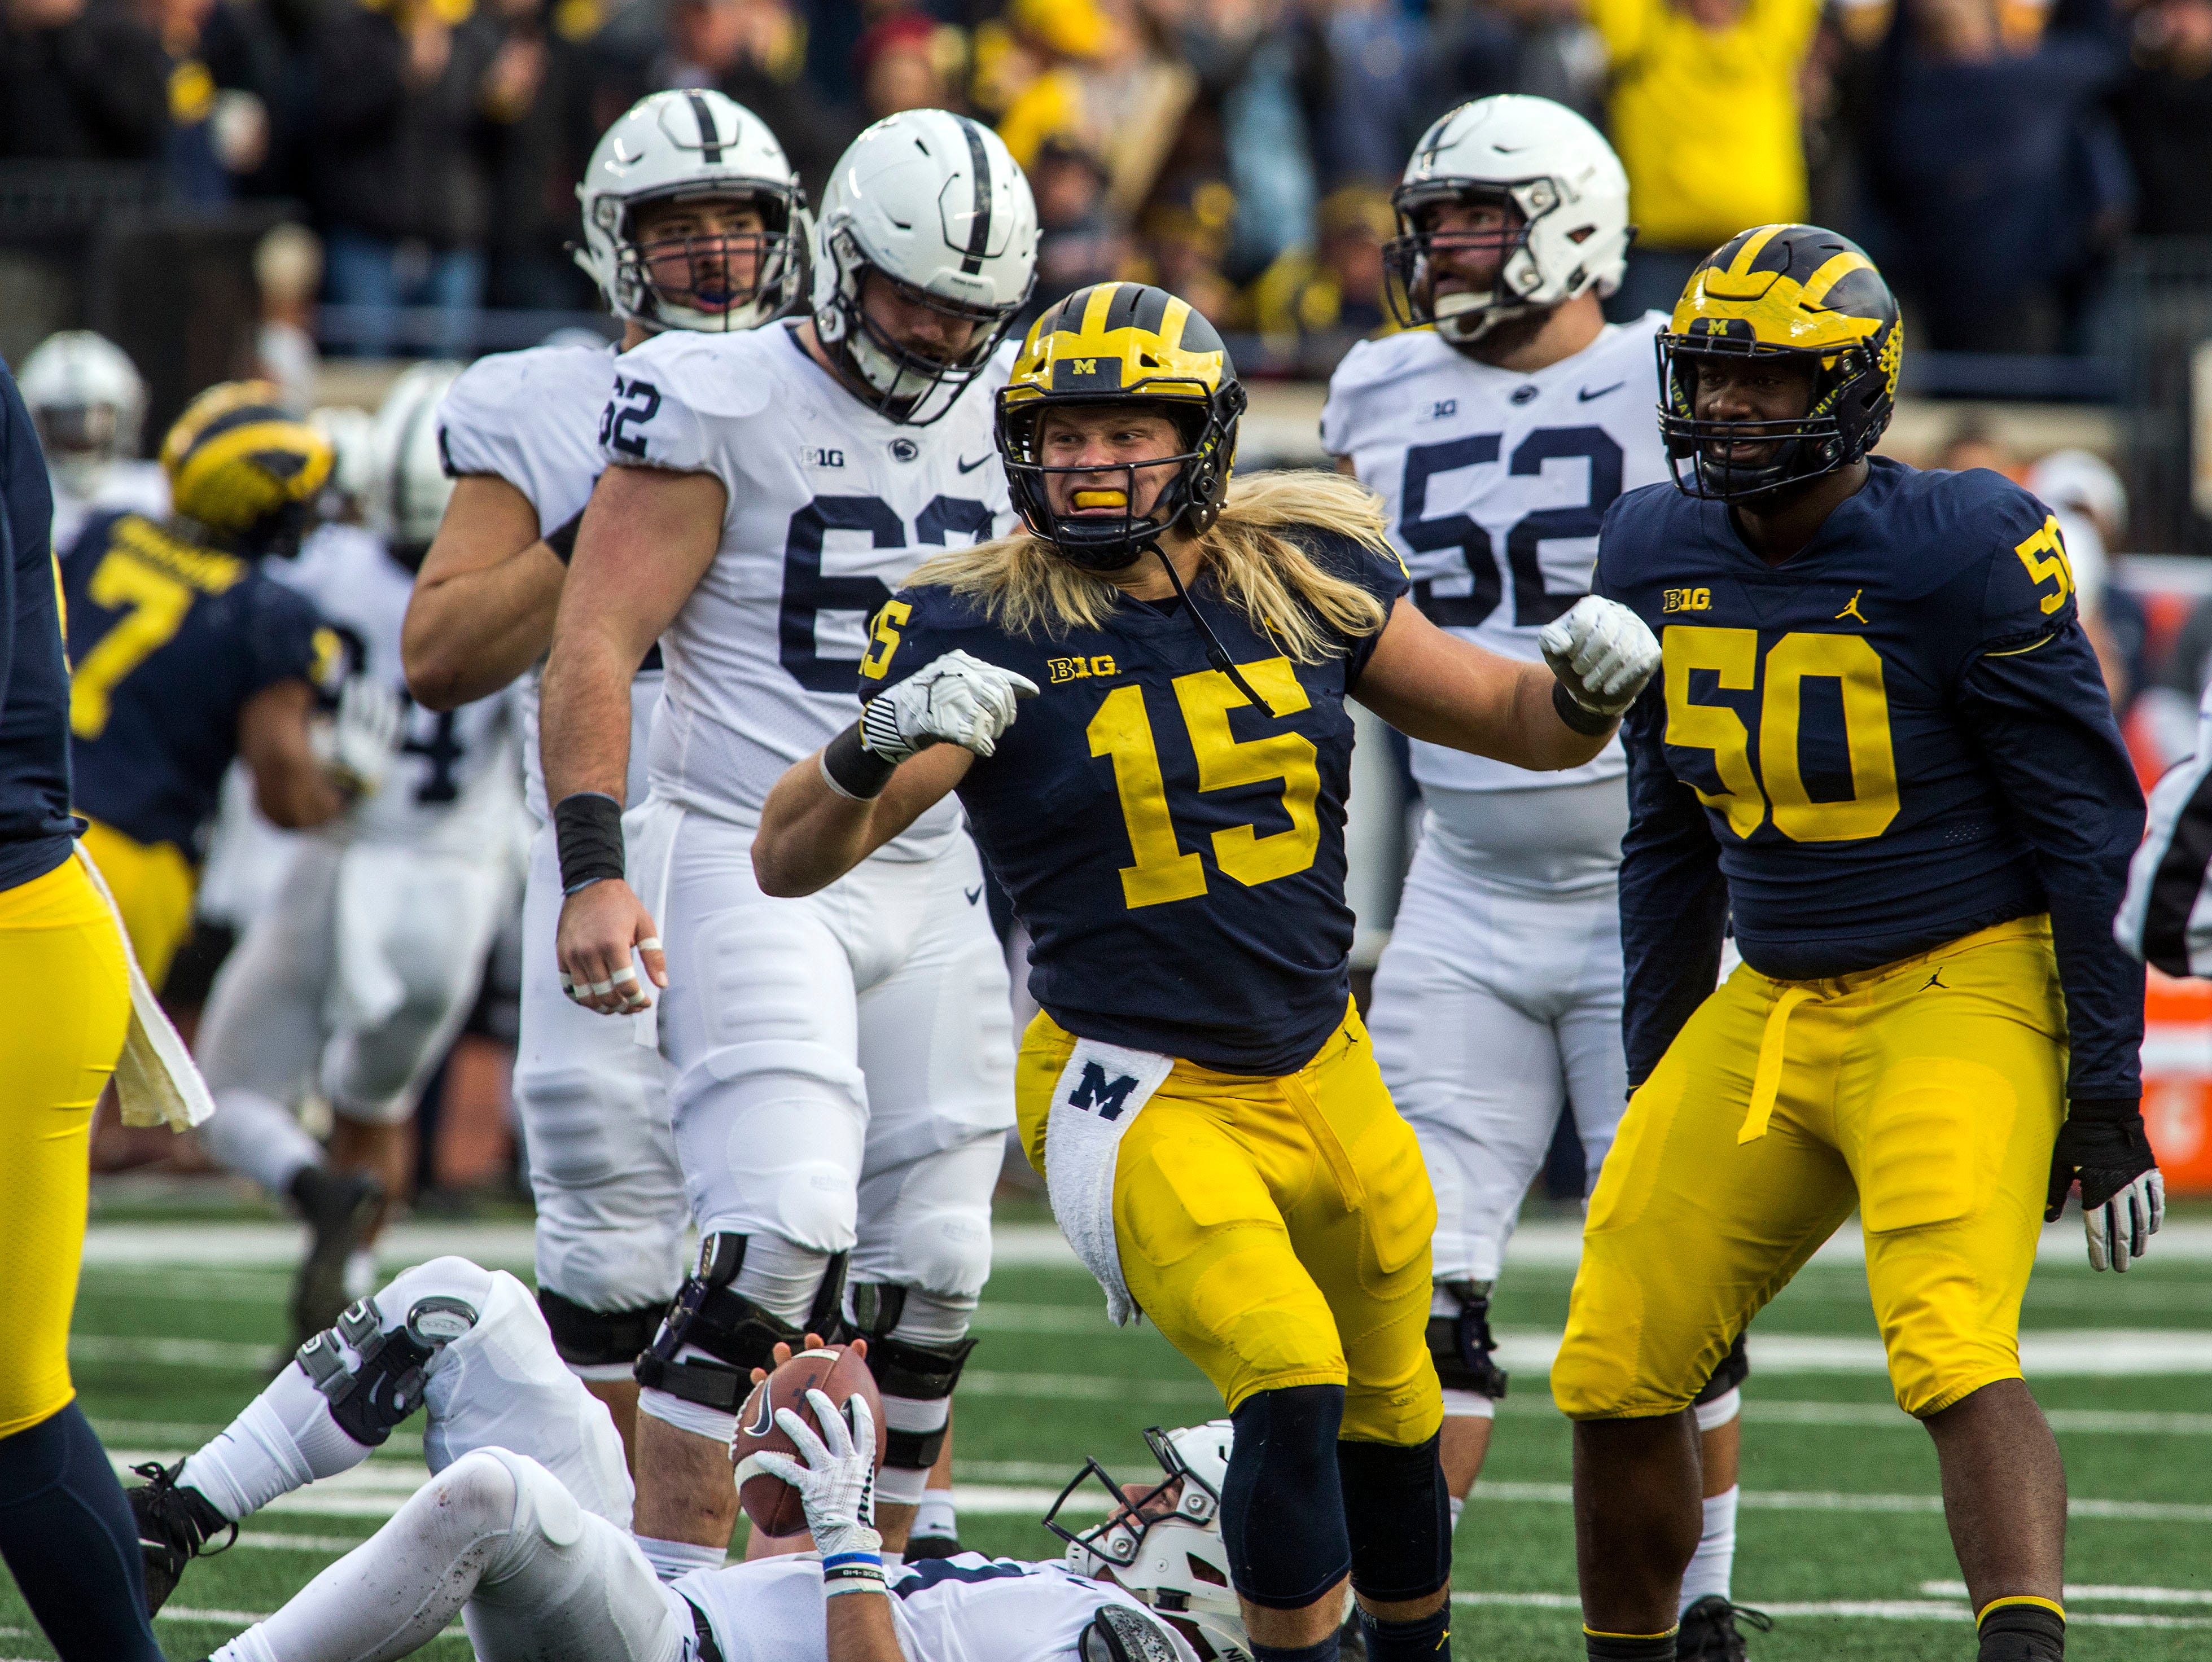 Michigan defensive lineman Chase Winovich (15) celebrates with defensive lineman Michael Dwumfour (50) after a sack of Penn State quarterback Trace McSorley, bottom, in the third quarter of an NCAA college football game in Ann Arbor, Mich., Saturday, Nov. 3, 2018. Michigan won 42-7. (AP Photo/Tony Ding)